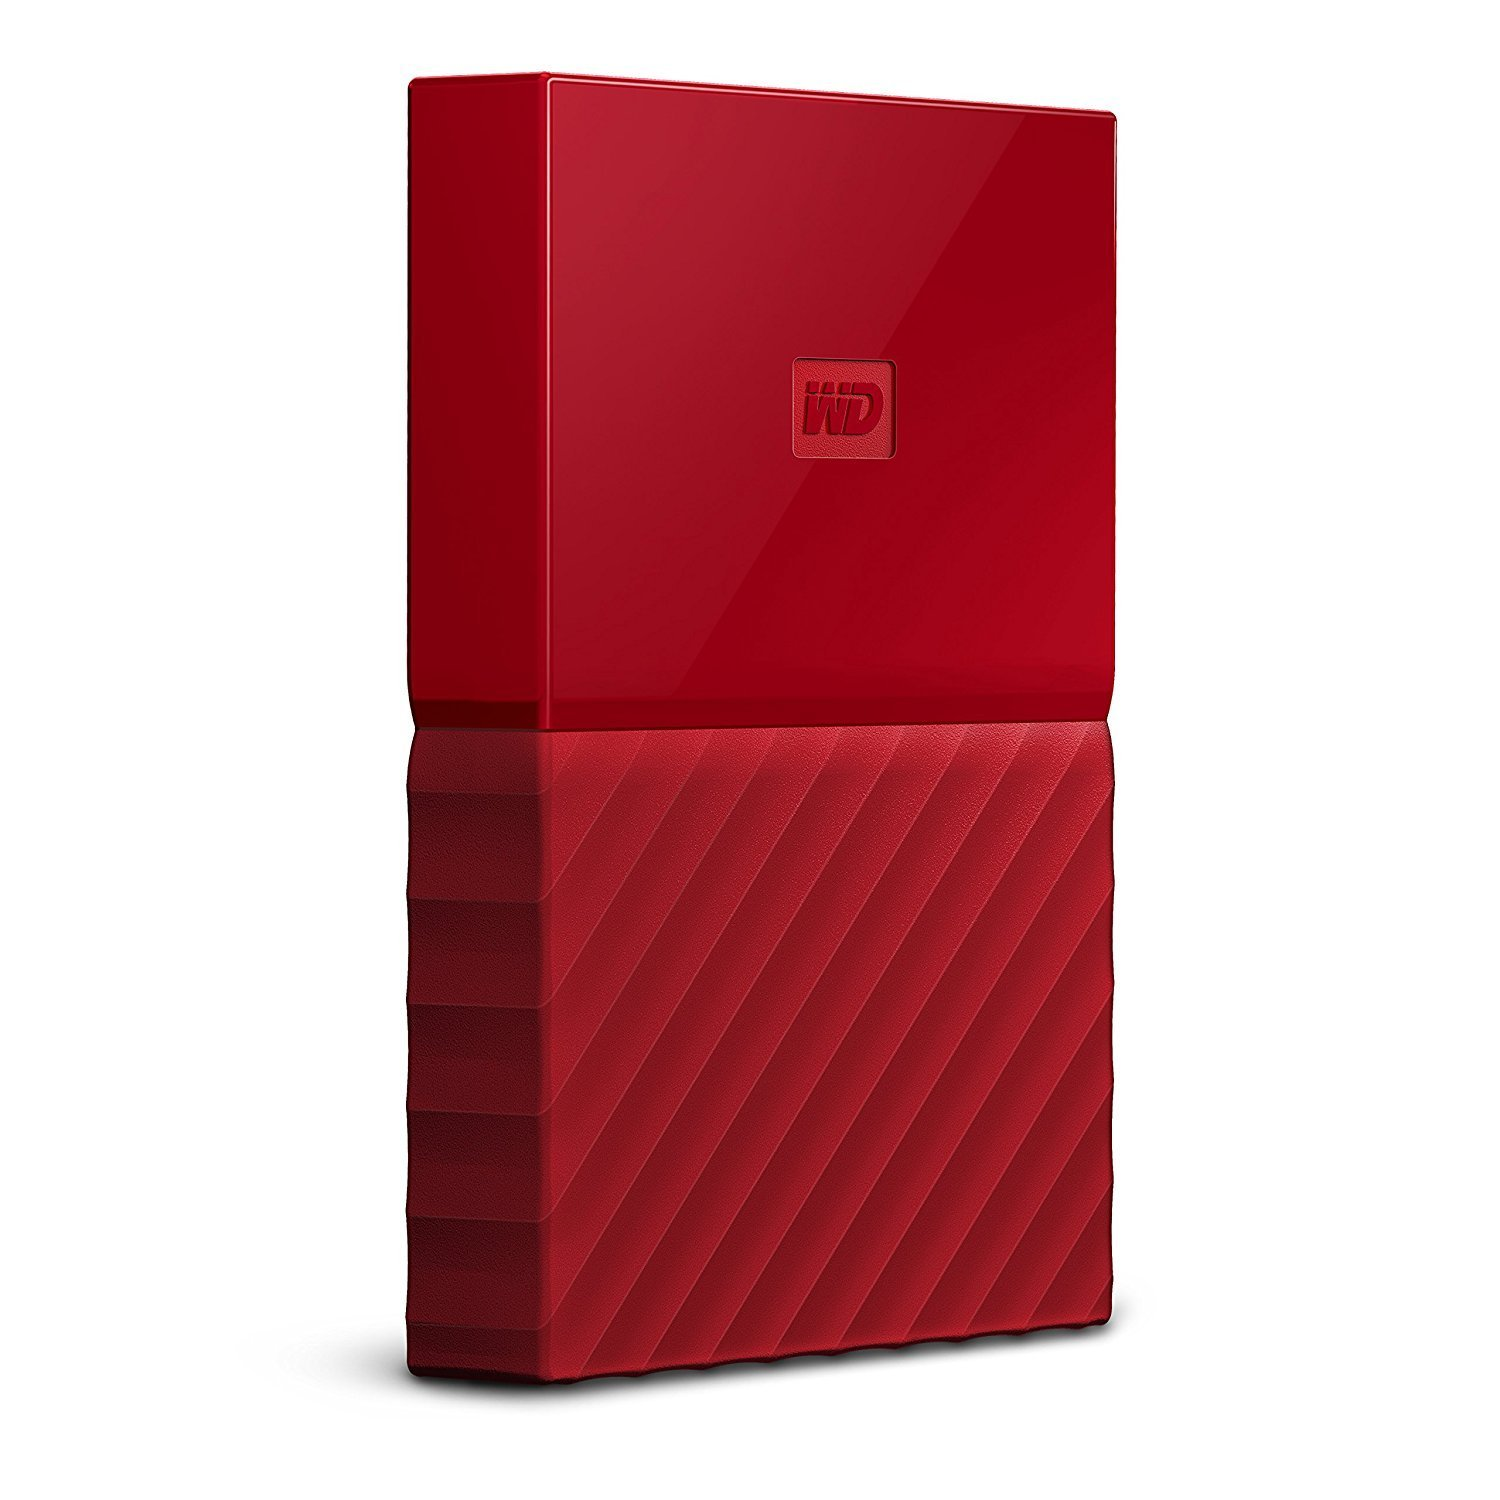 WD 2TB MY PASSPORT RED